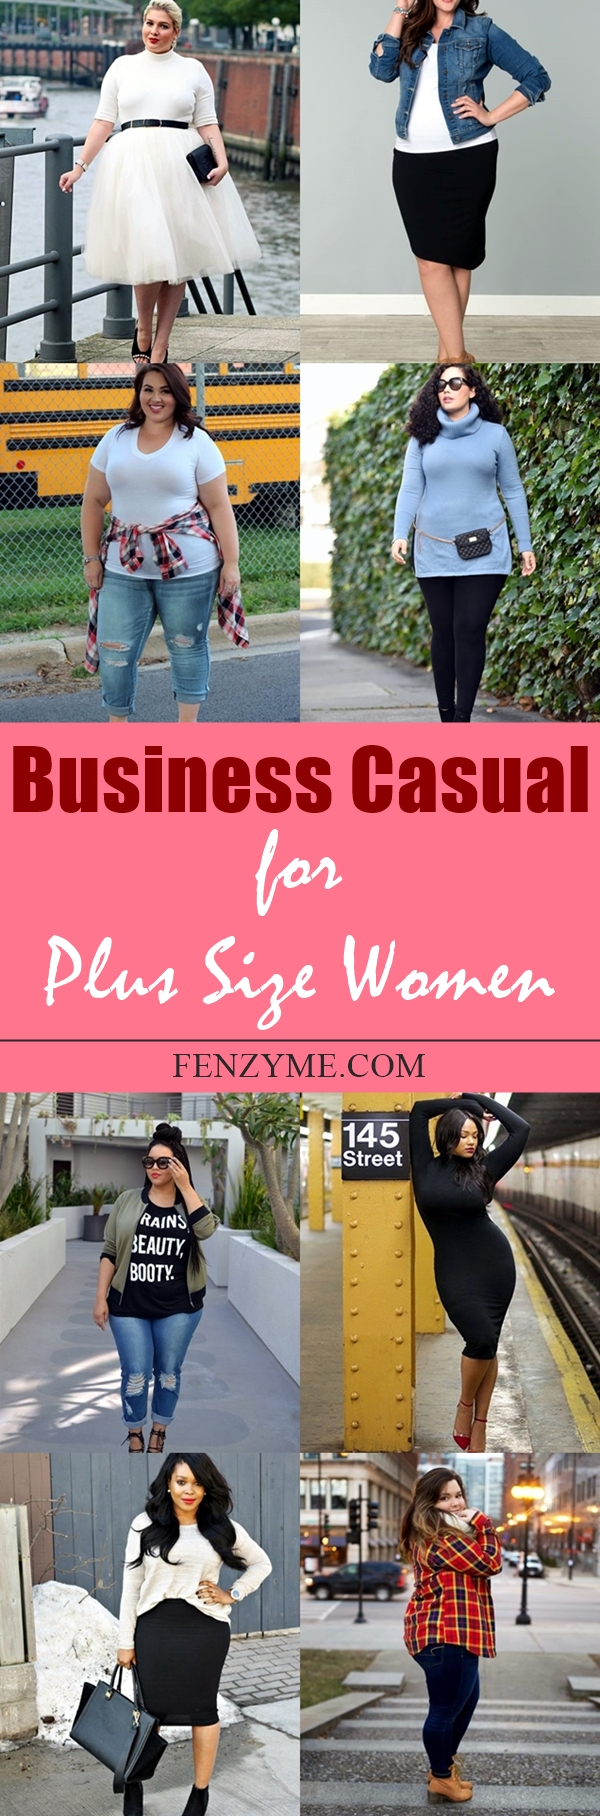 business-casual-for-plus-size-women-3-tile